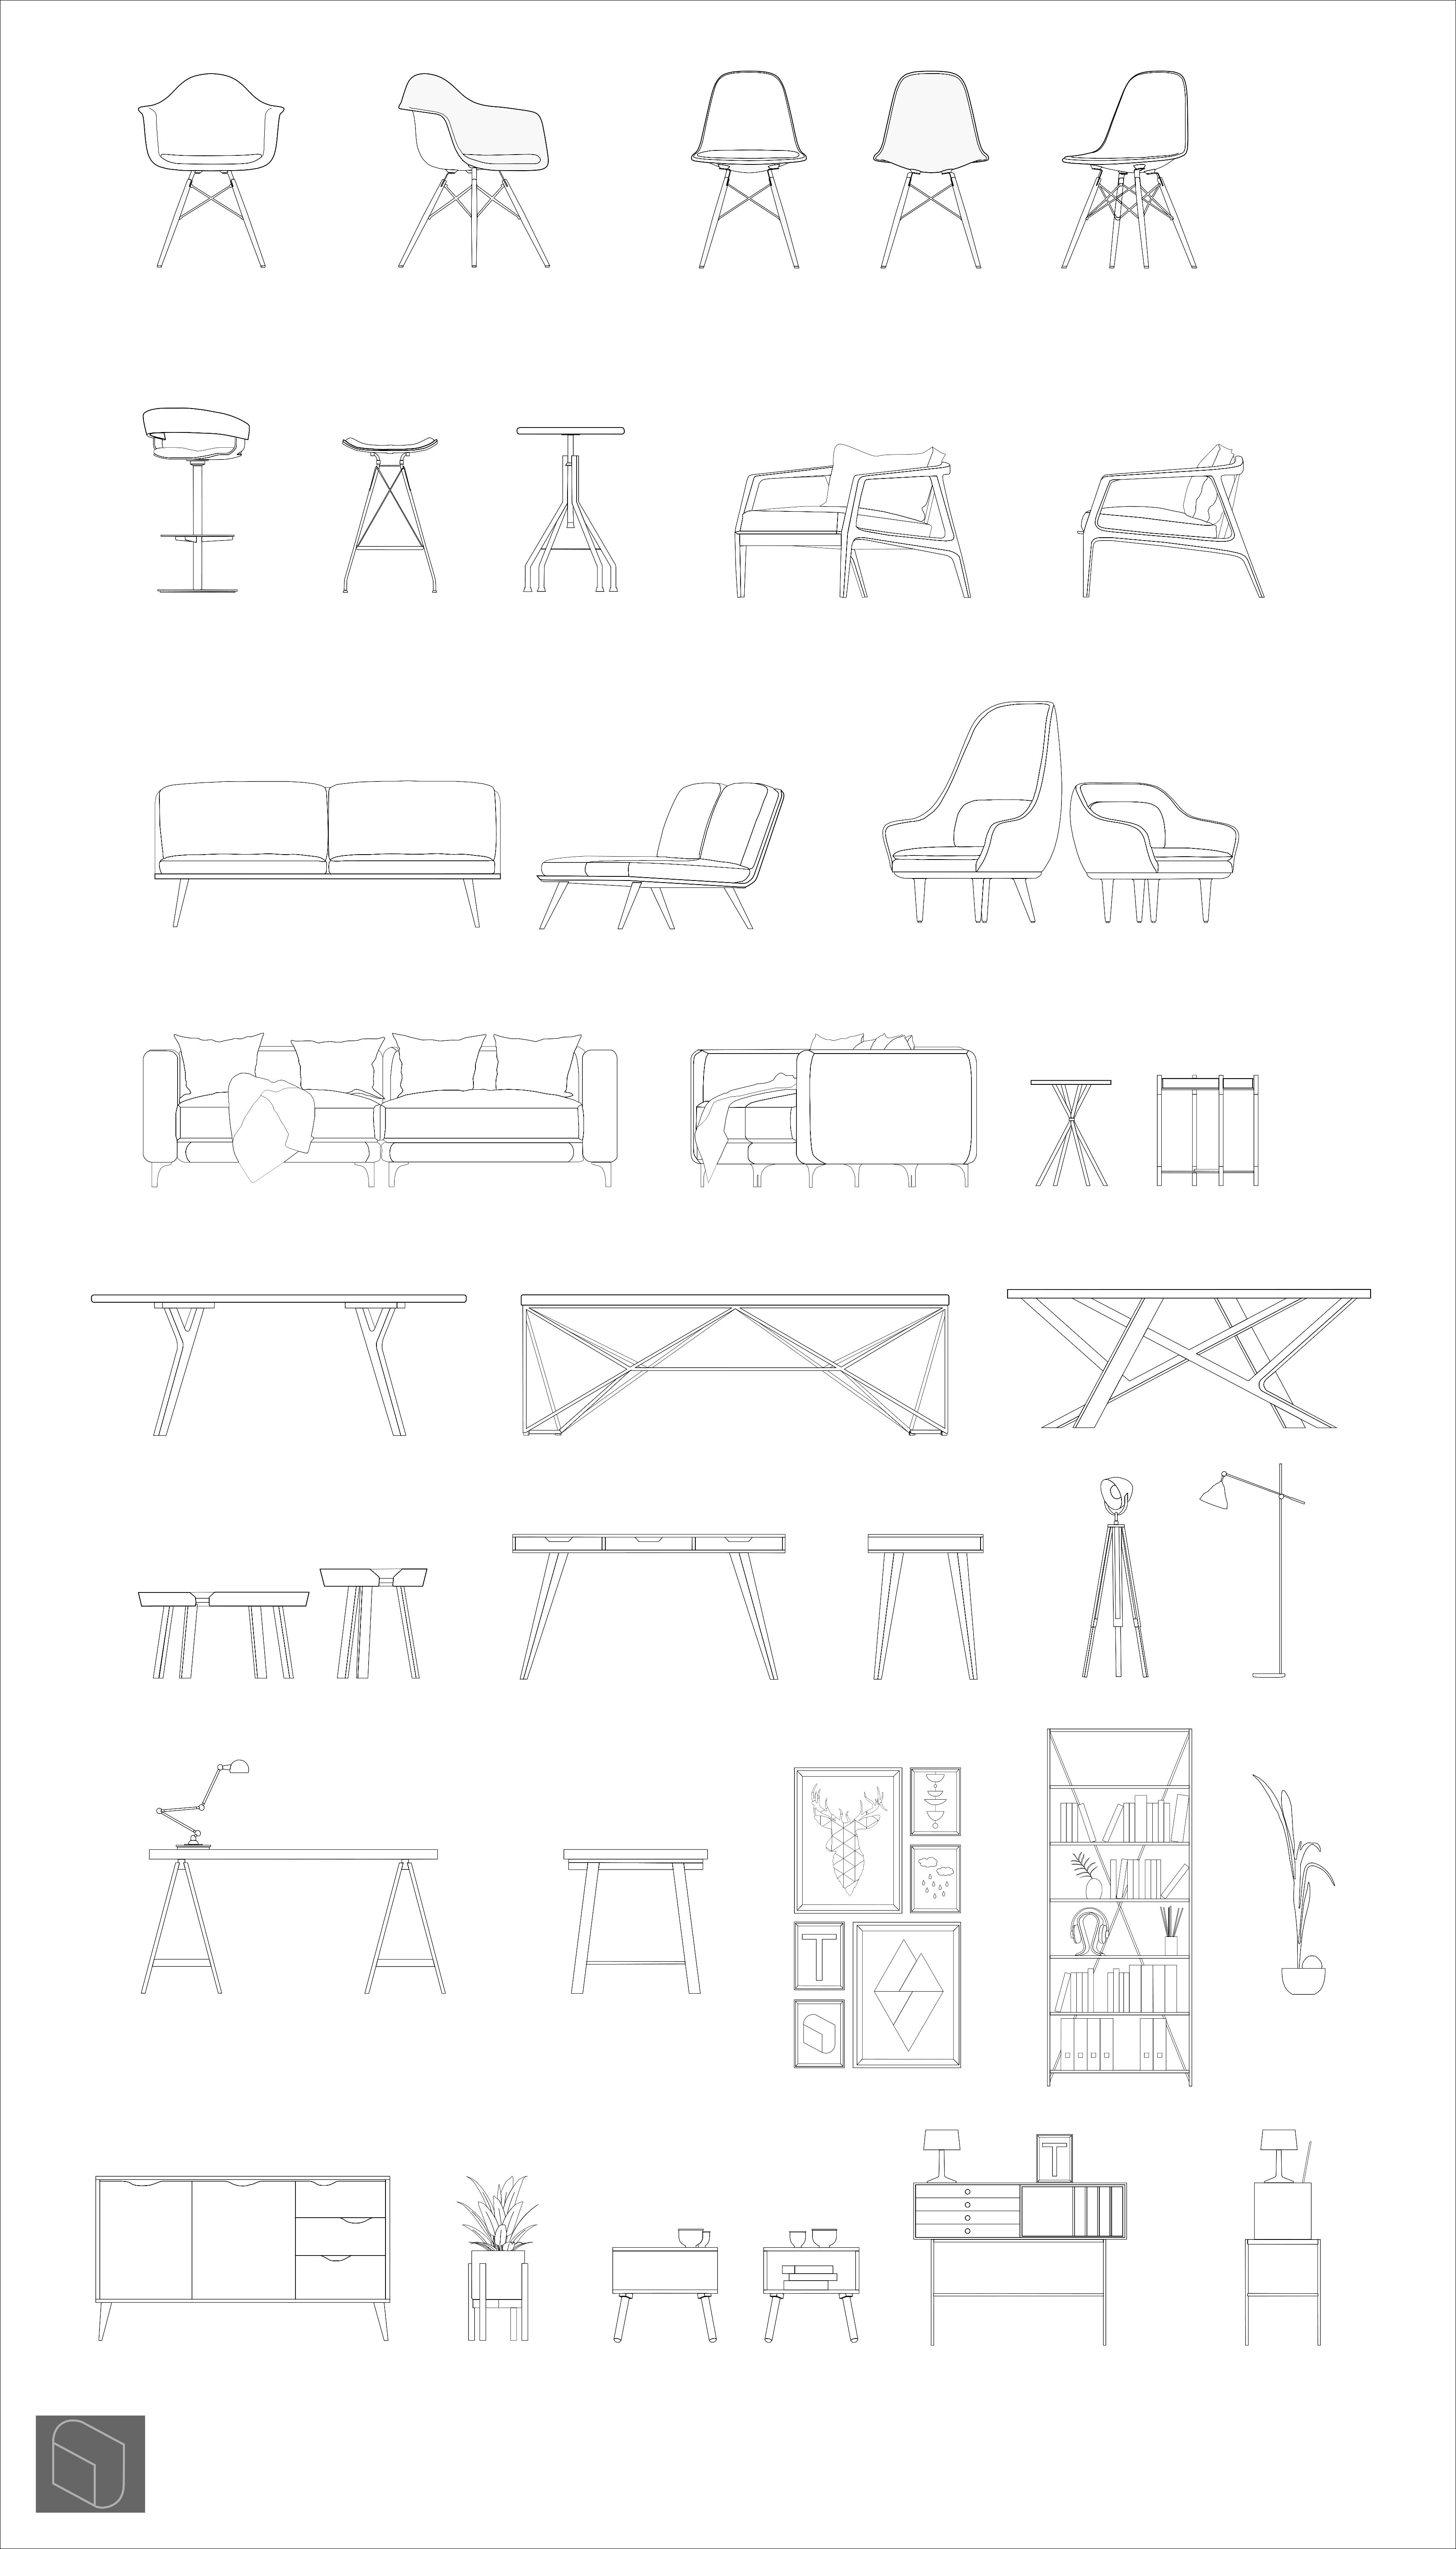 Ikea Küche Dwg Modern Furniture Cad Dwg Drawings For More Toffu Co